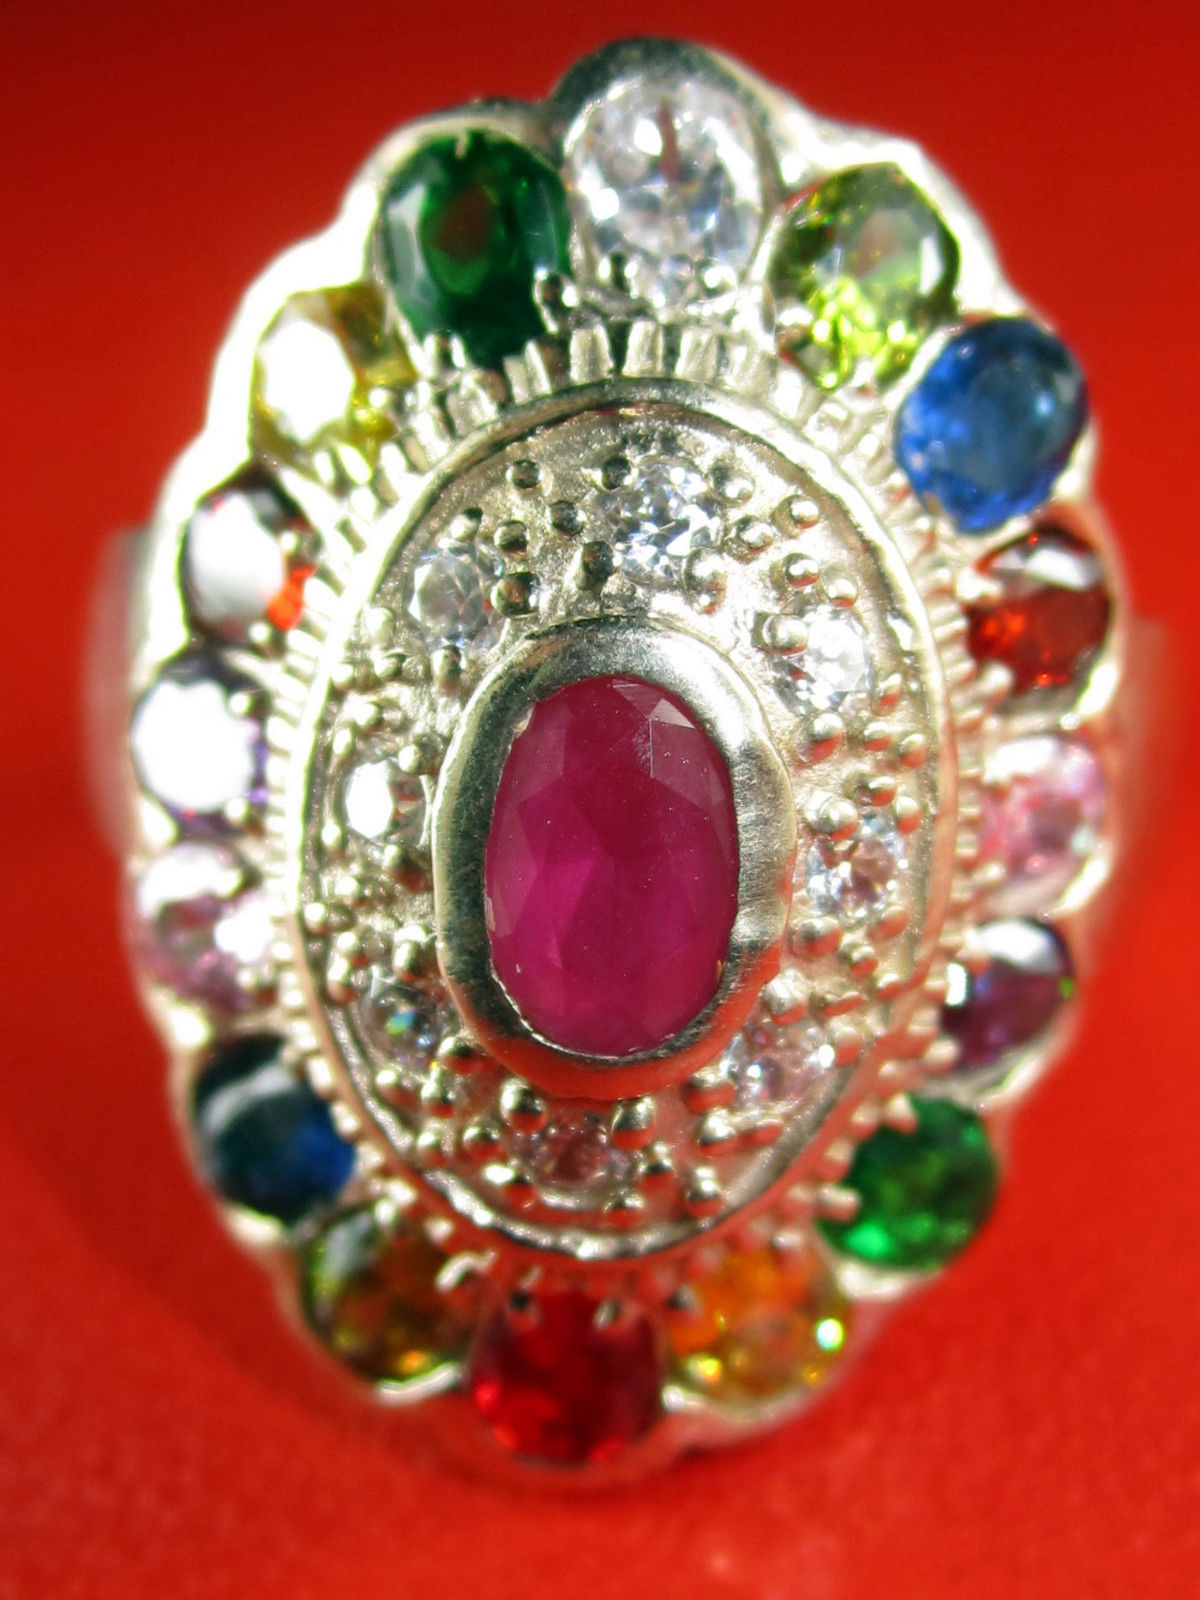 Primary image for Rare! Limited Multi-Colors Gem Stone Ring Top Thai Buddha Amulets USA Size 10.5